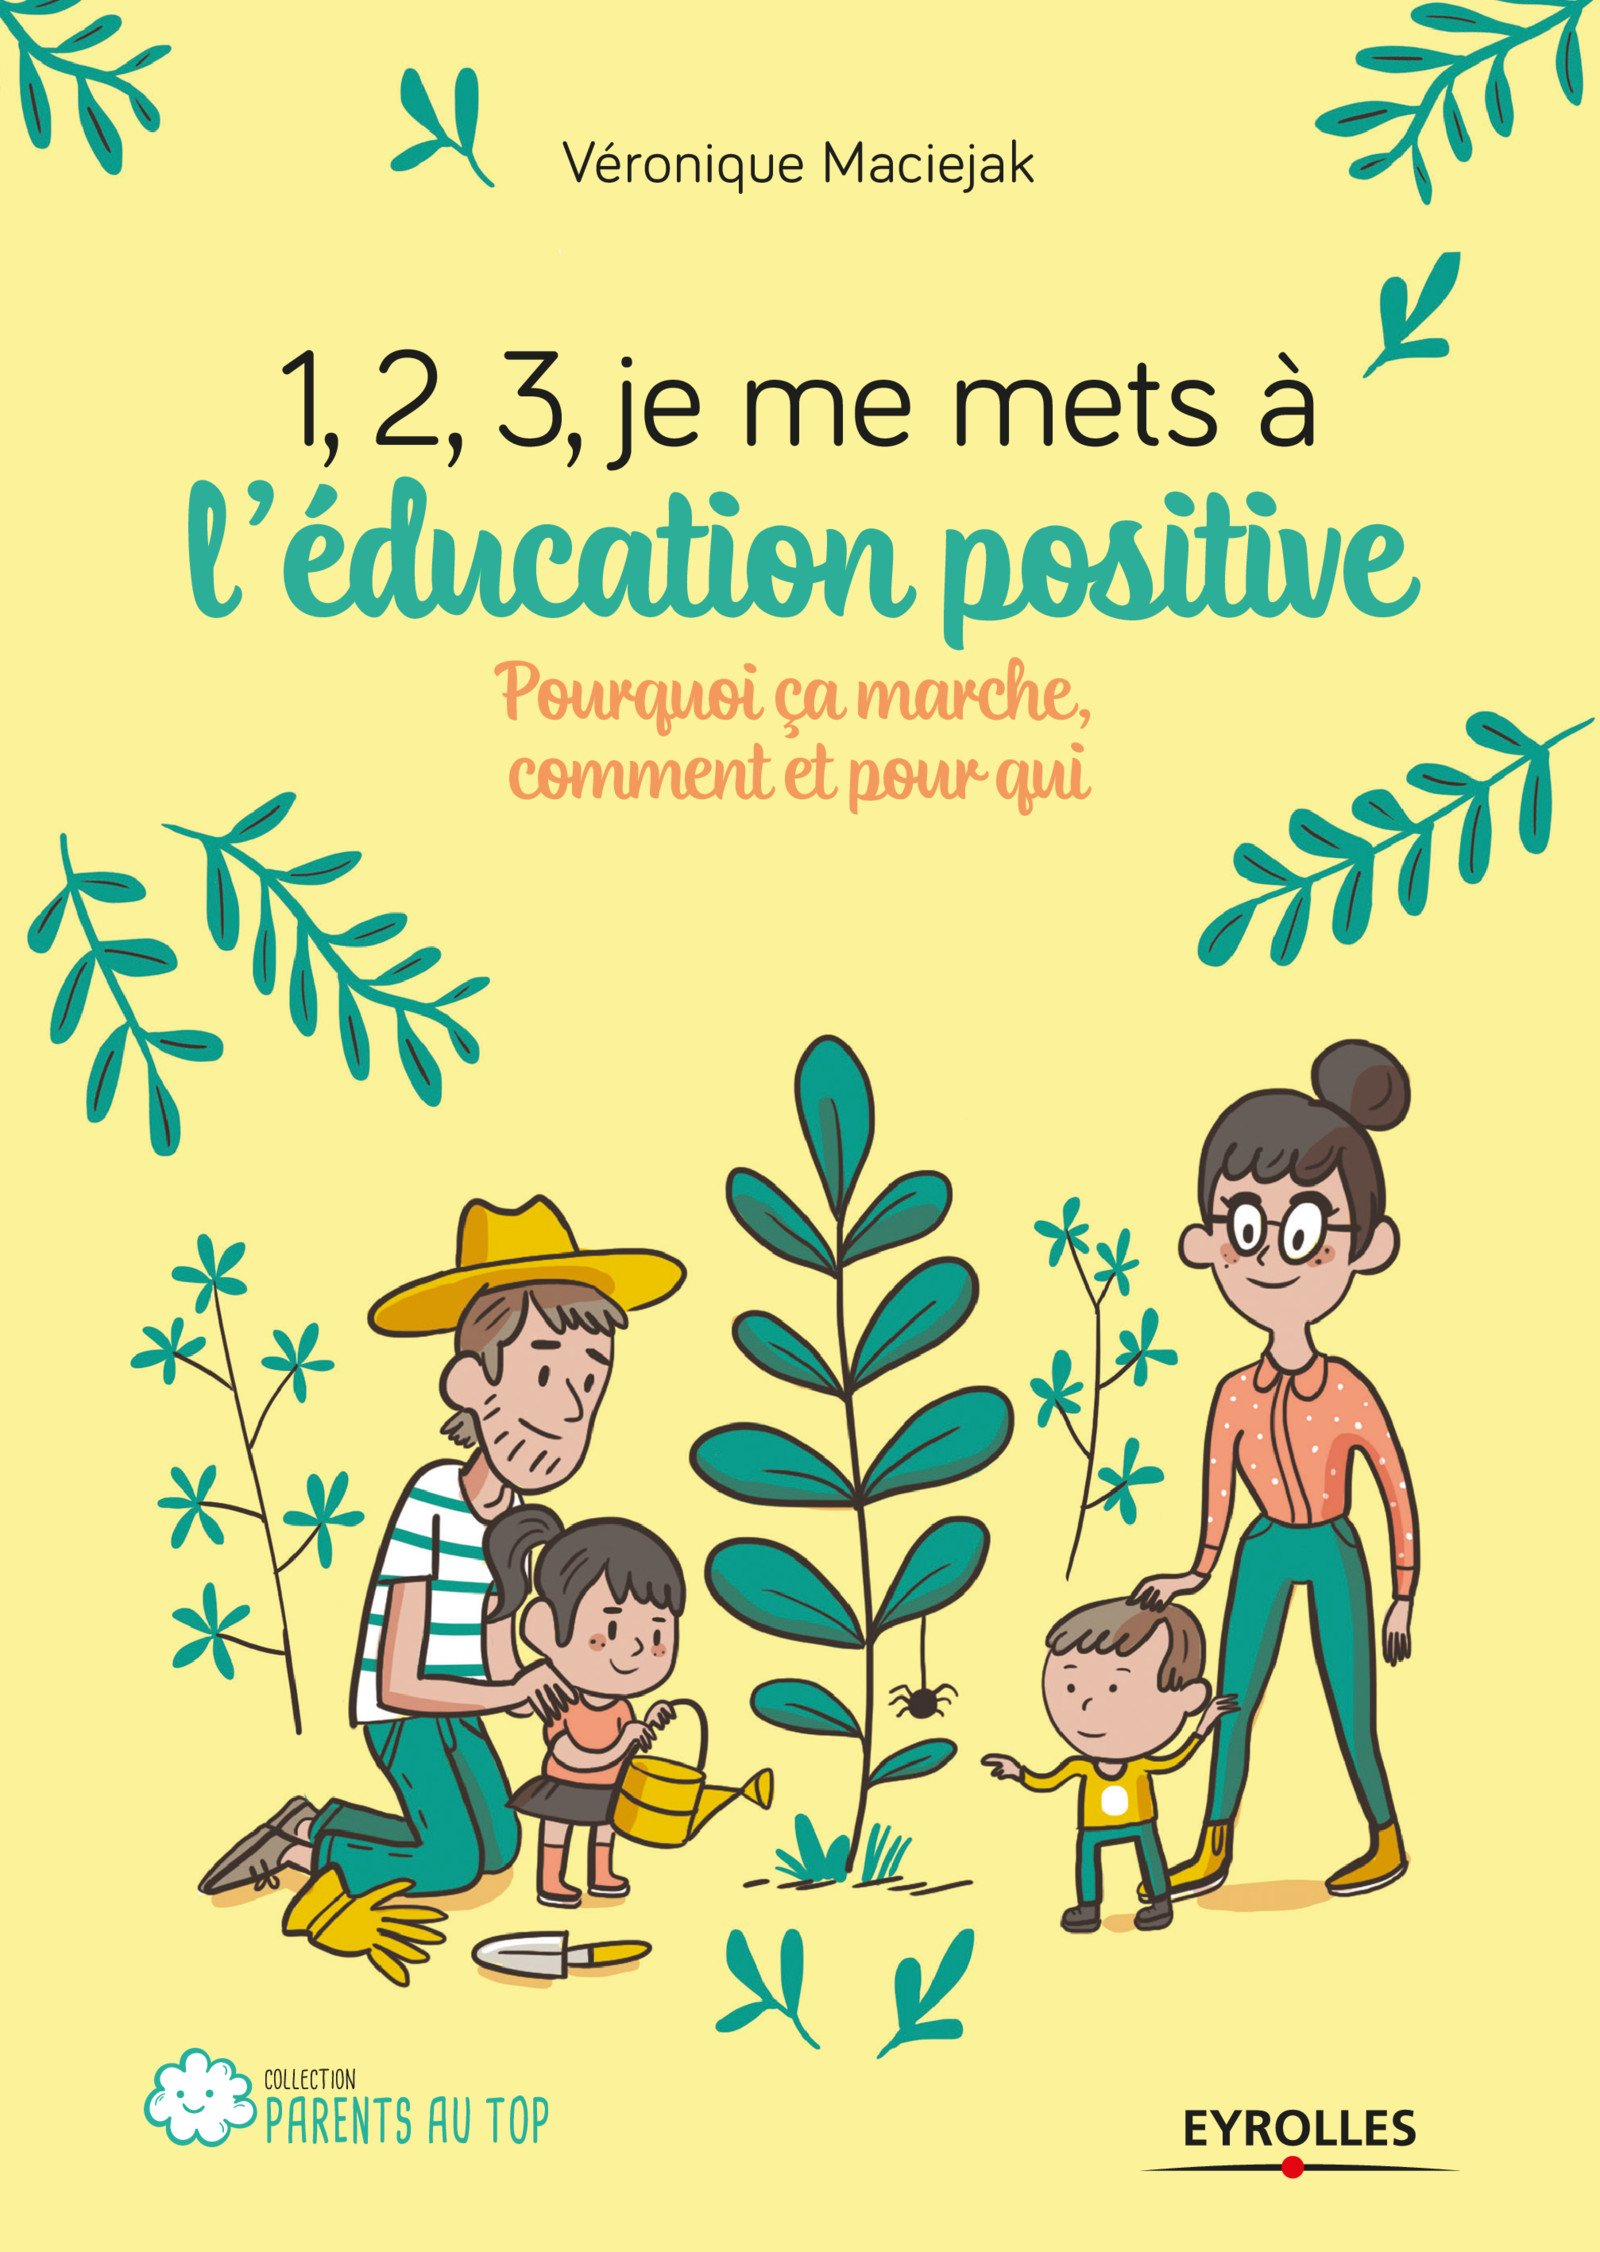 1 2 3 education positive eyrolles